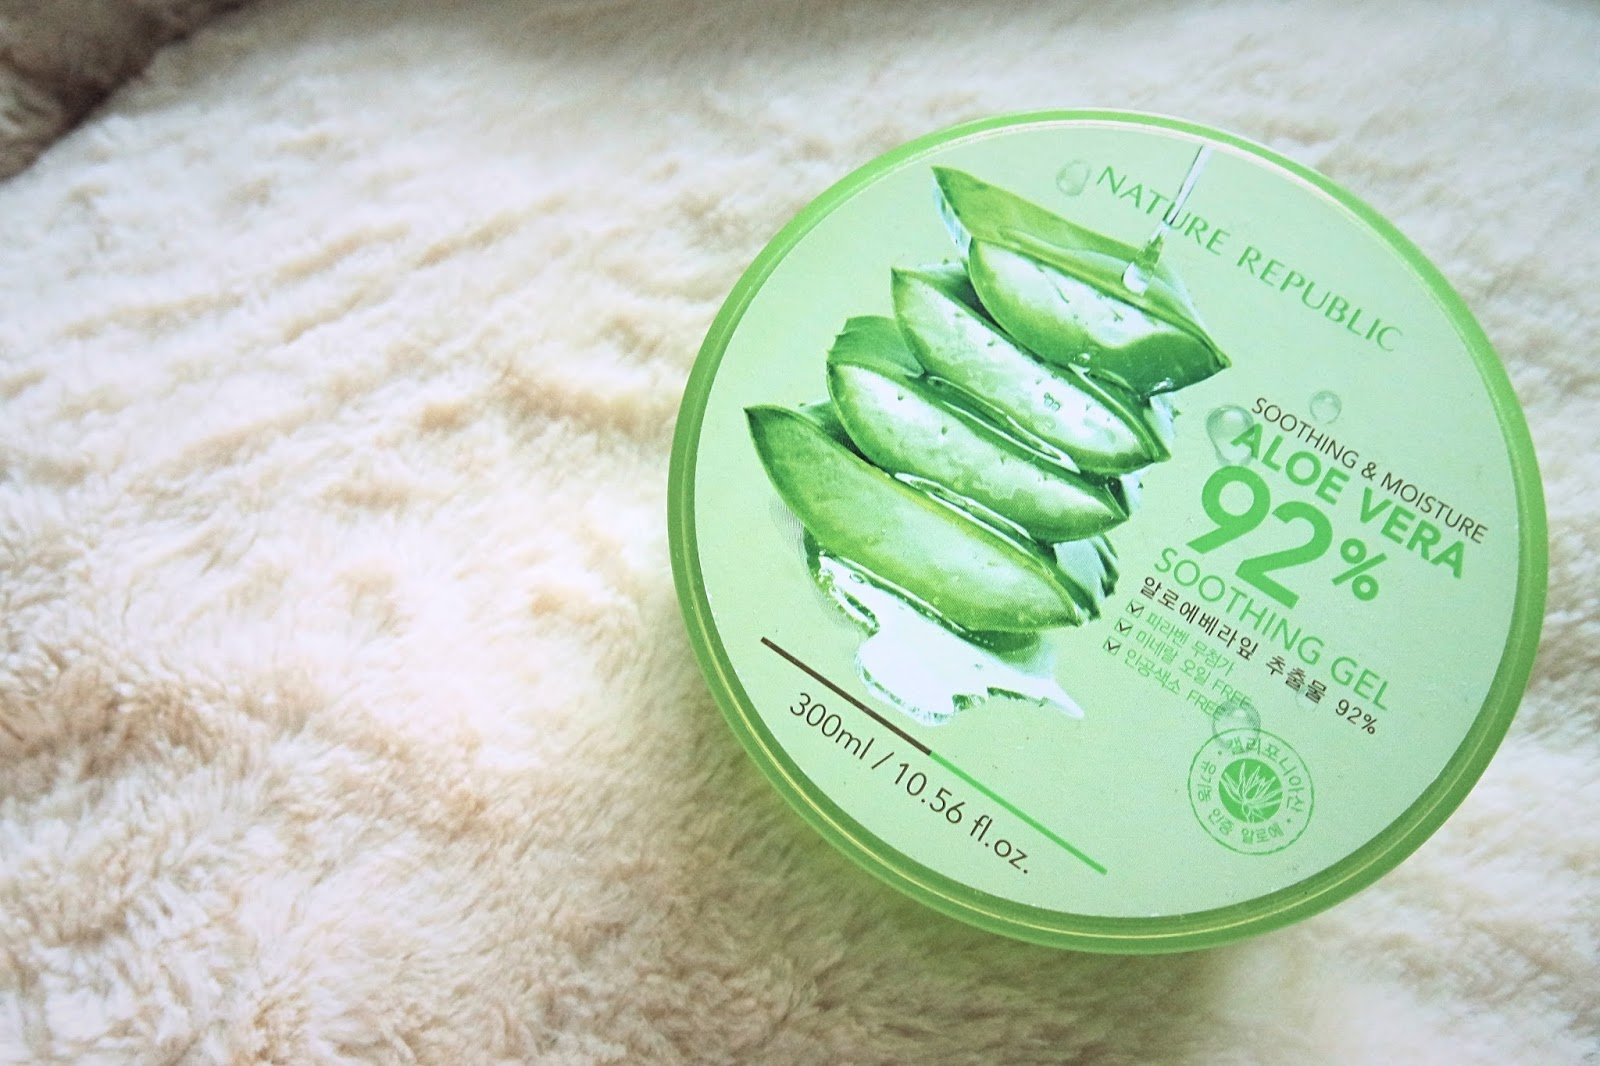 Nature republic soothing and moisture aloe vera 92 soothing gel 300ml - Nature Republic Aloe Vera 92 Gel This Is Nature Republic S Soothing Moisture